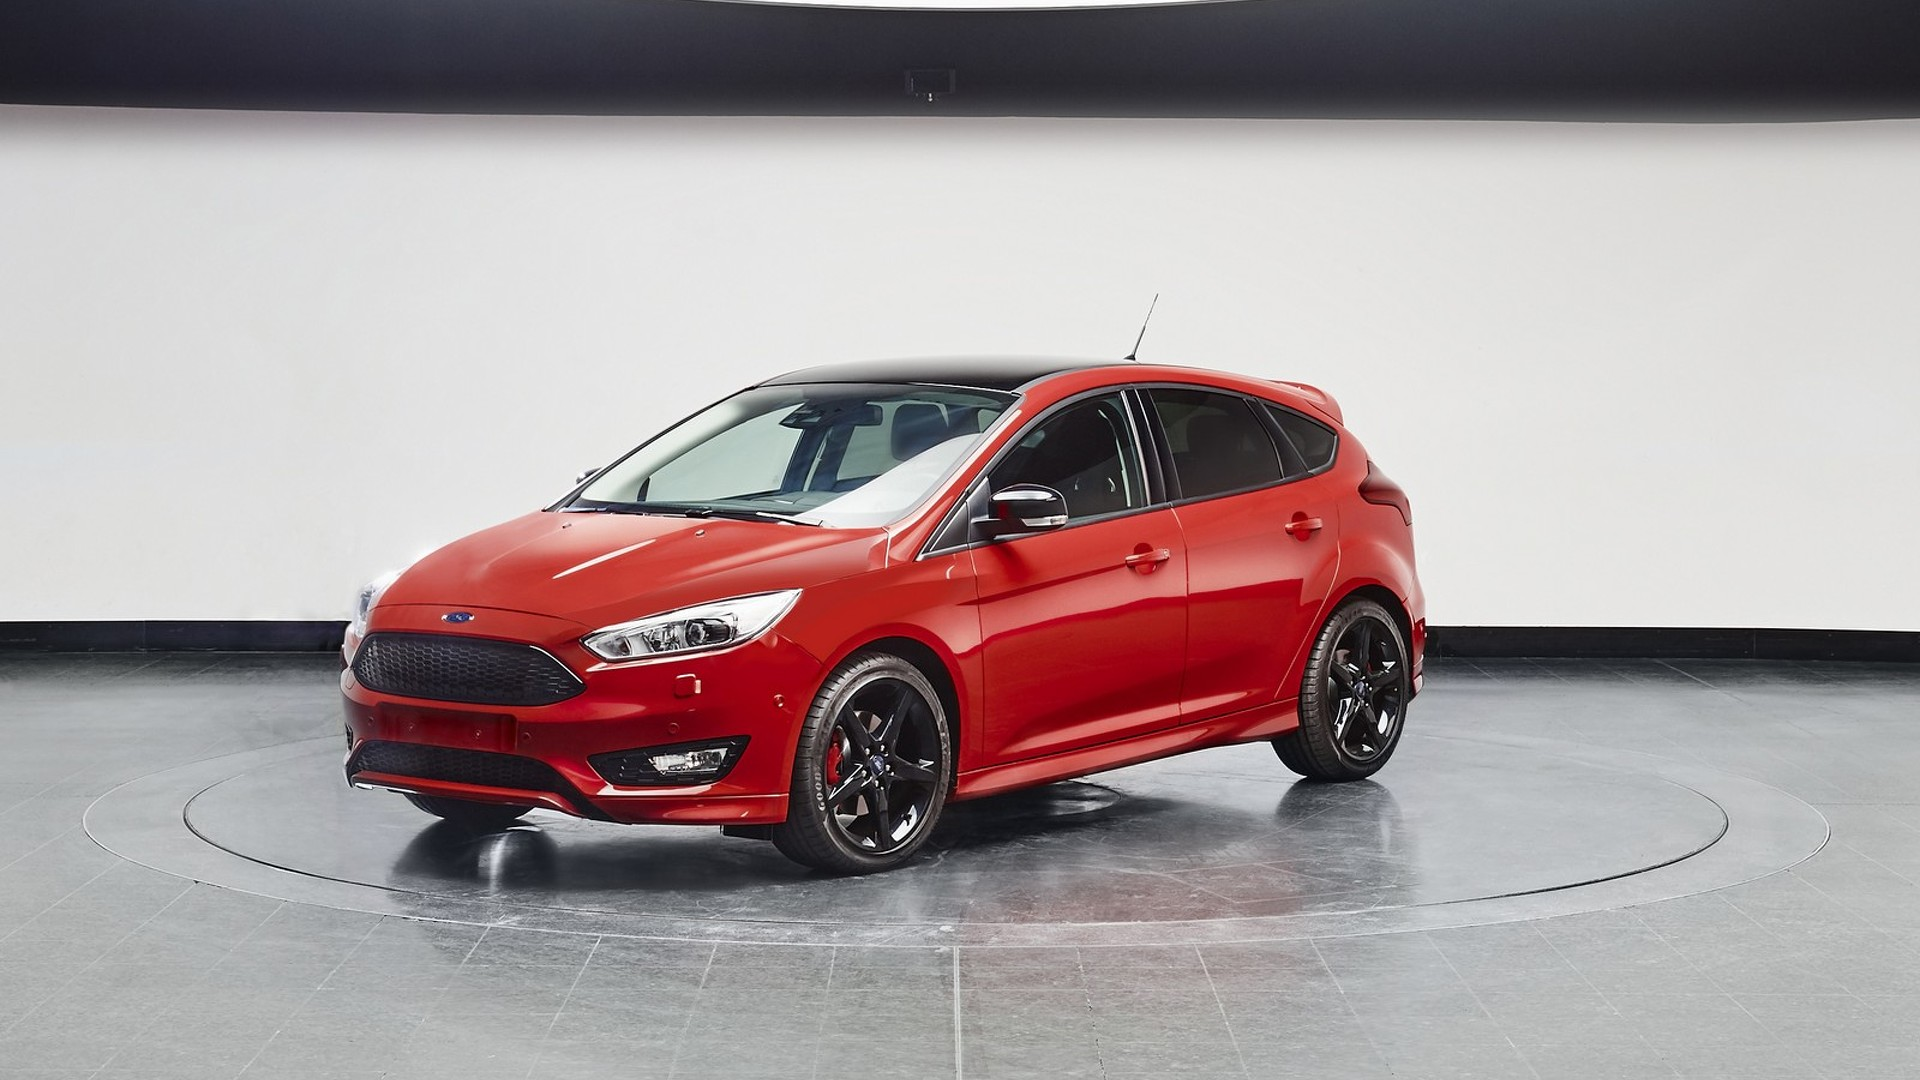 Ford Focus Black & Red Editions introduced in Europe